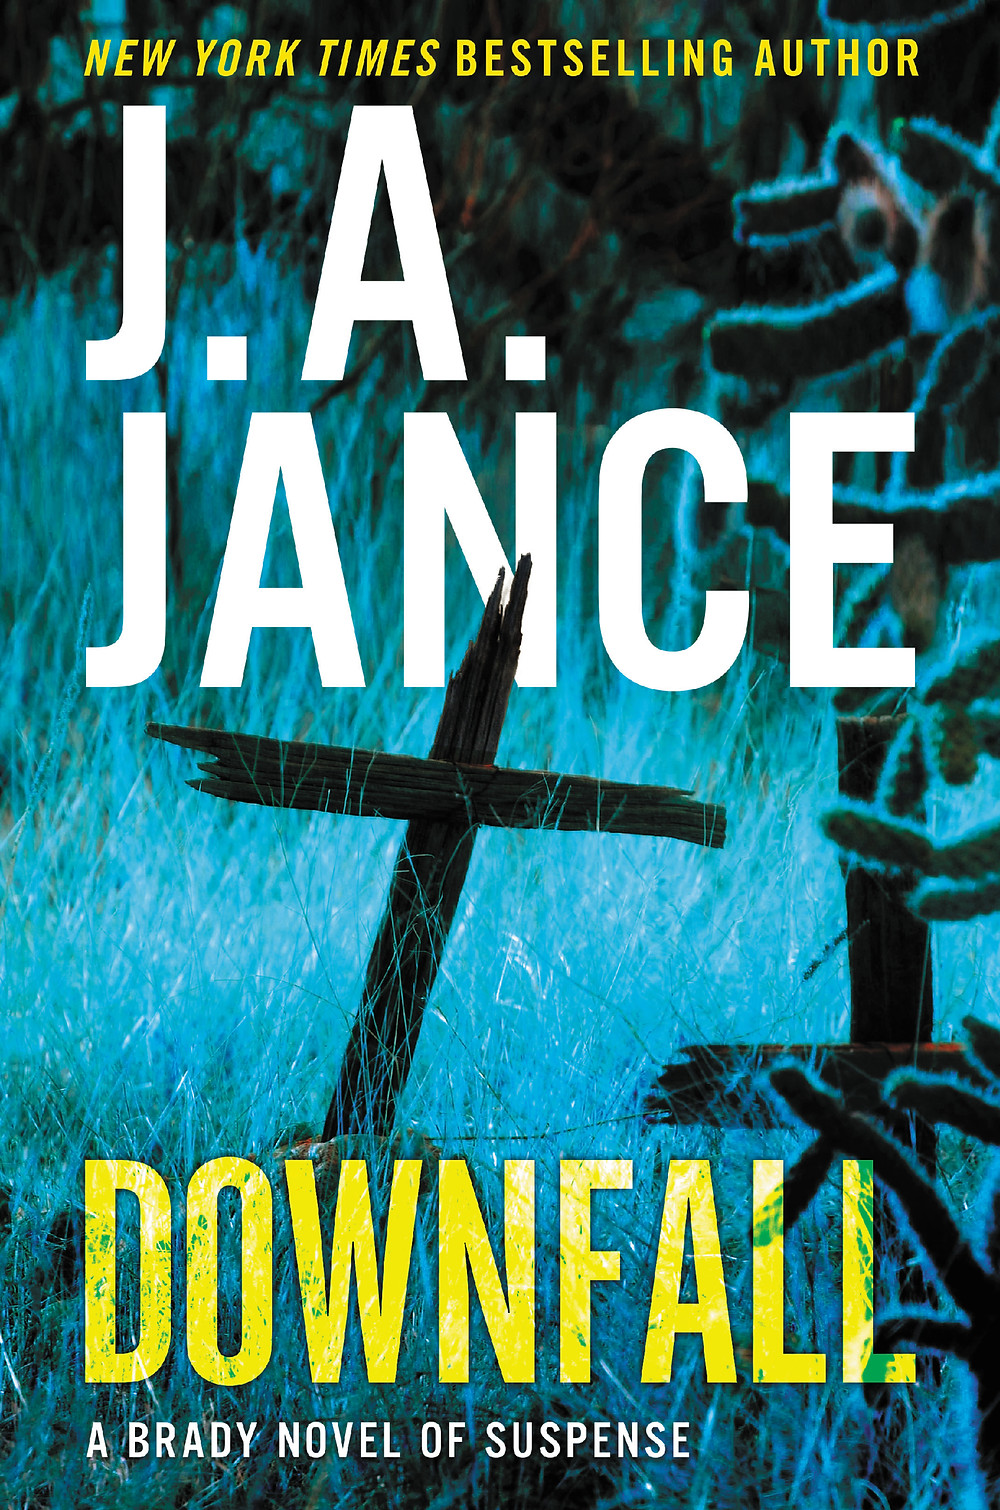 J.A. Jance's Downfall, image used with permission from HarperCollins